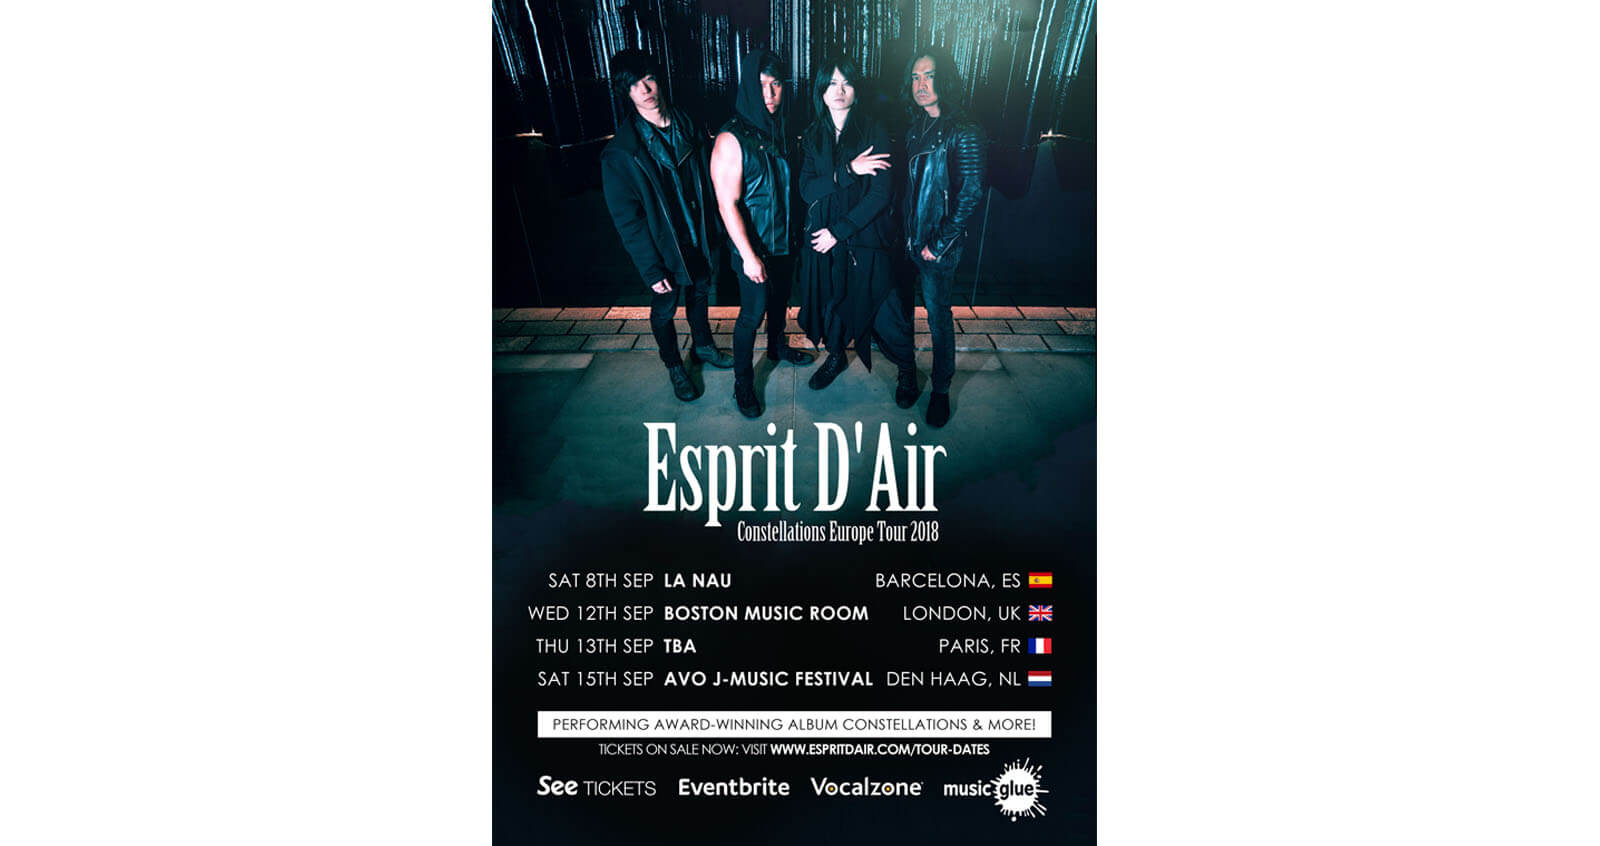 Esprit D'Air Europe Tour Poster